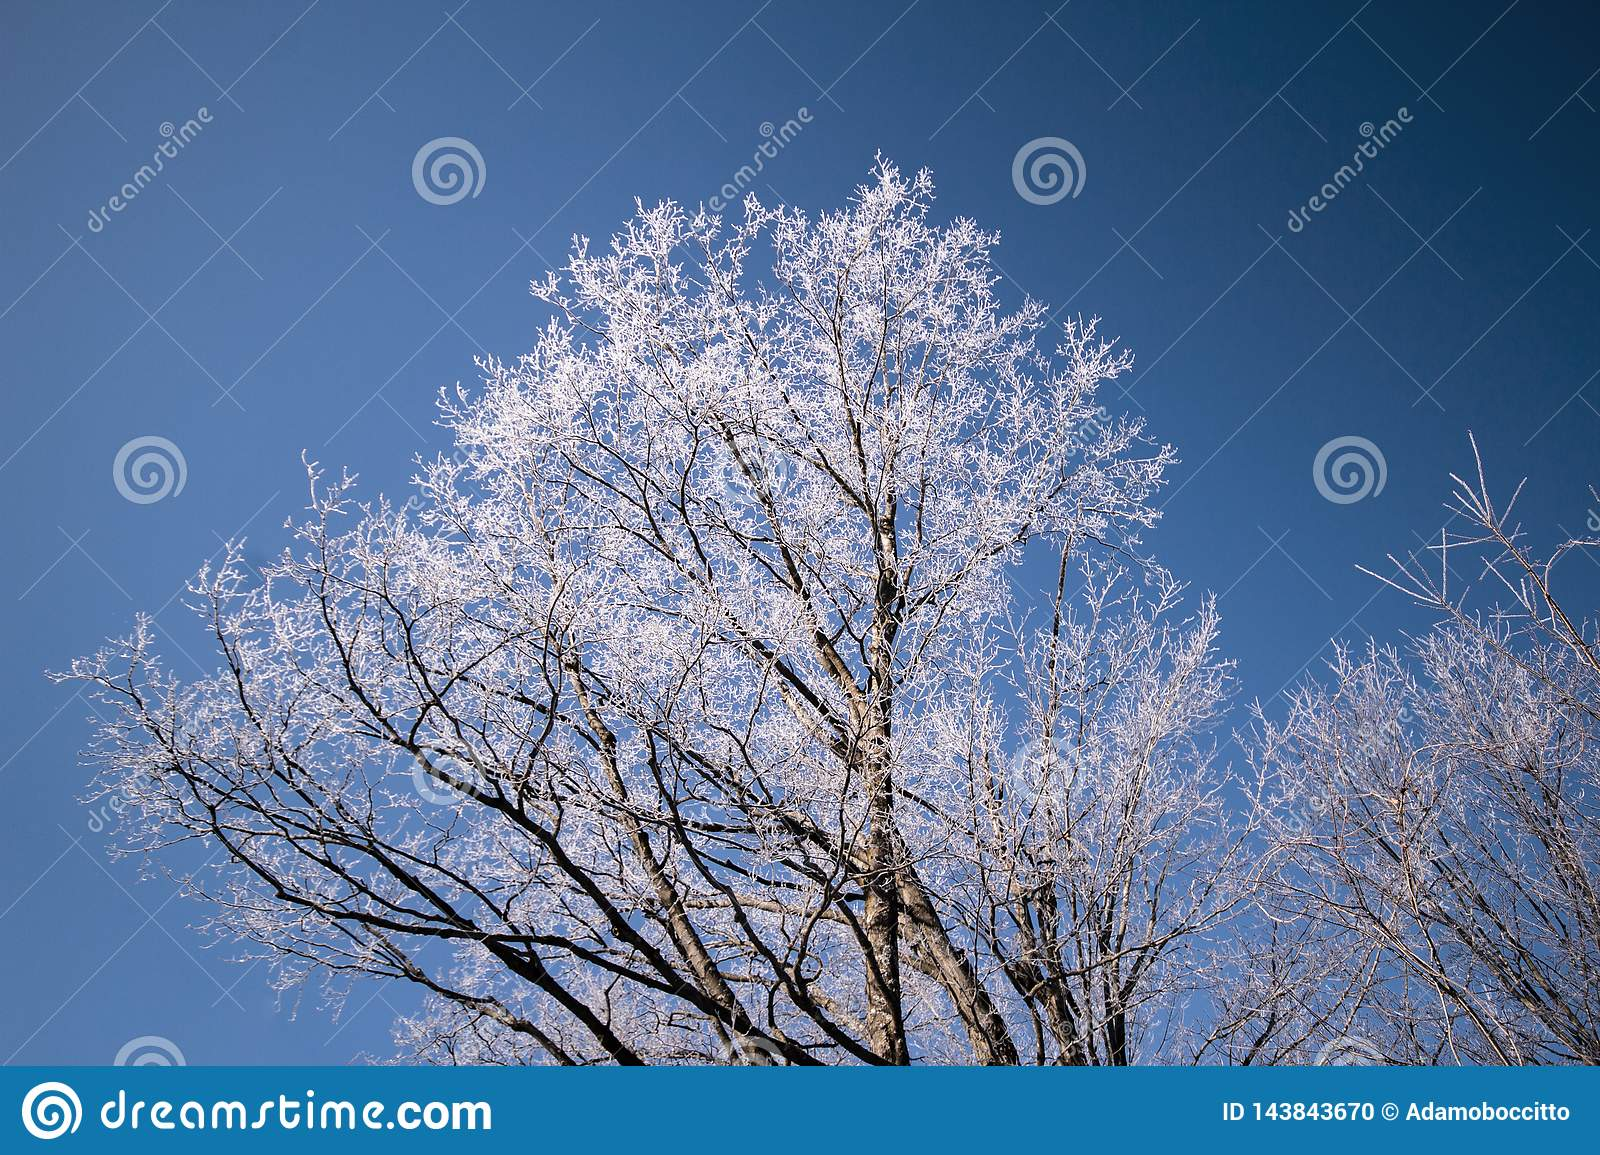 A winter tree with its branches frozen in ice